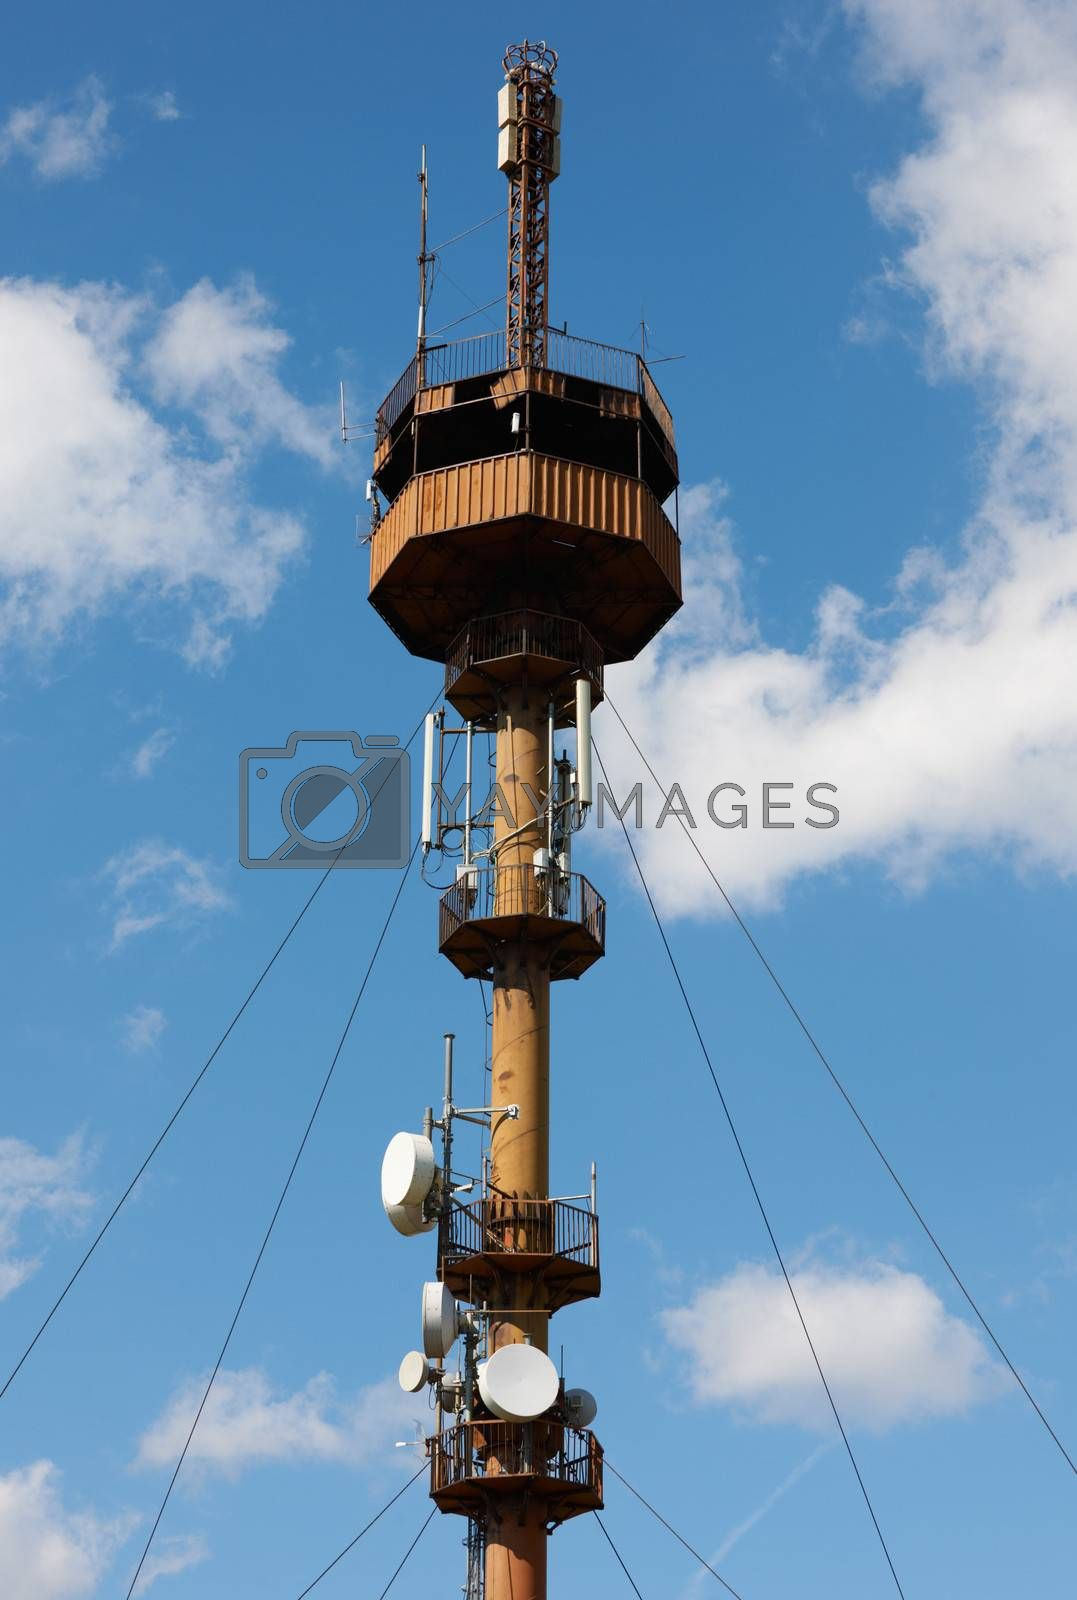 Communication tower by ecobo